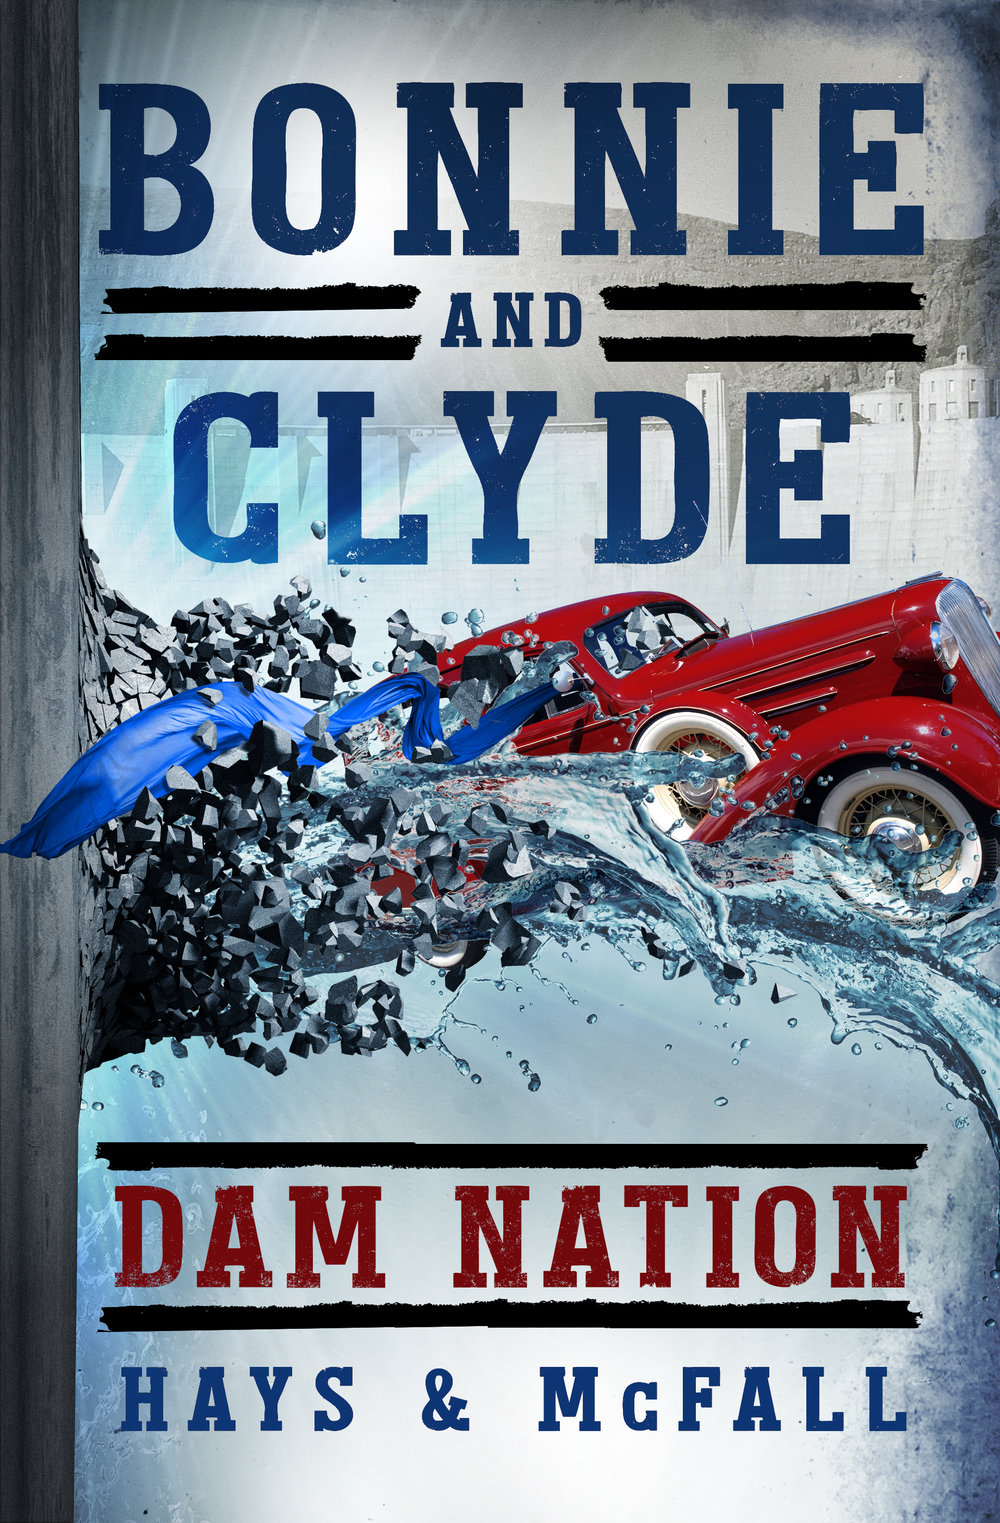 HR Bonnie and Clyde Dam Nation_Hays and McFall_DamNation_FrontCover_978-0-9974113-6-2 copy.jpg